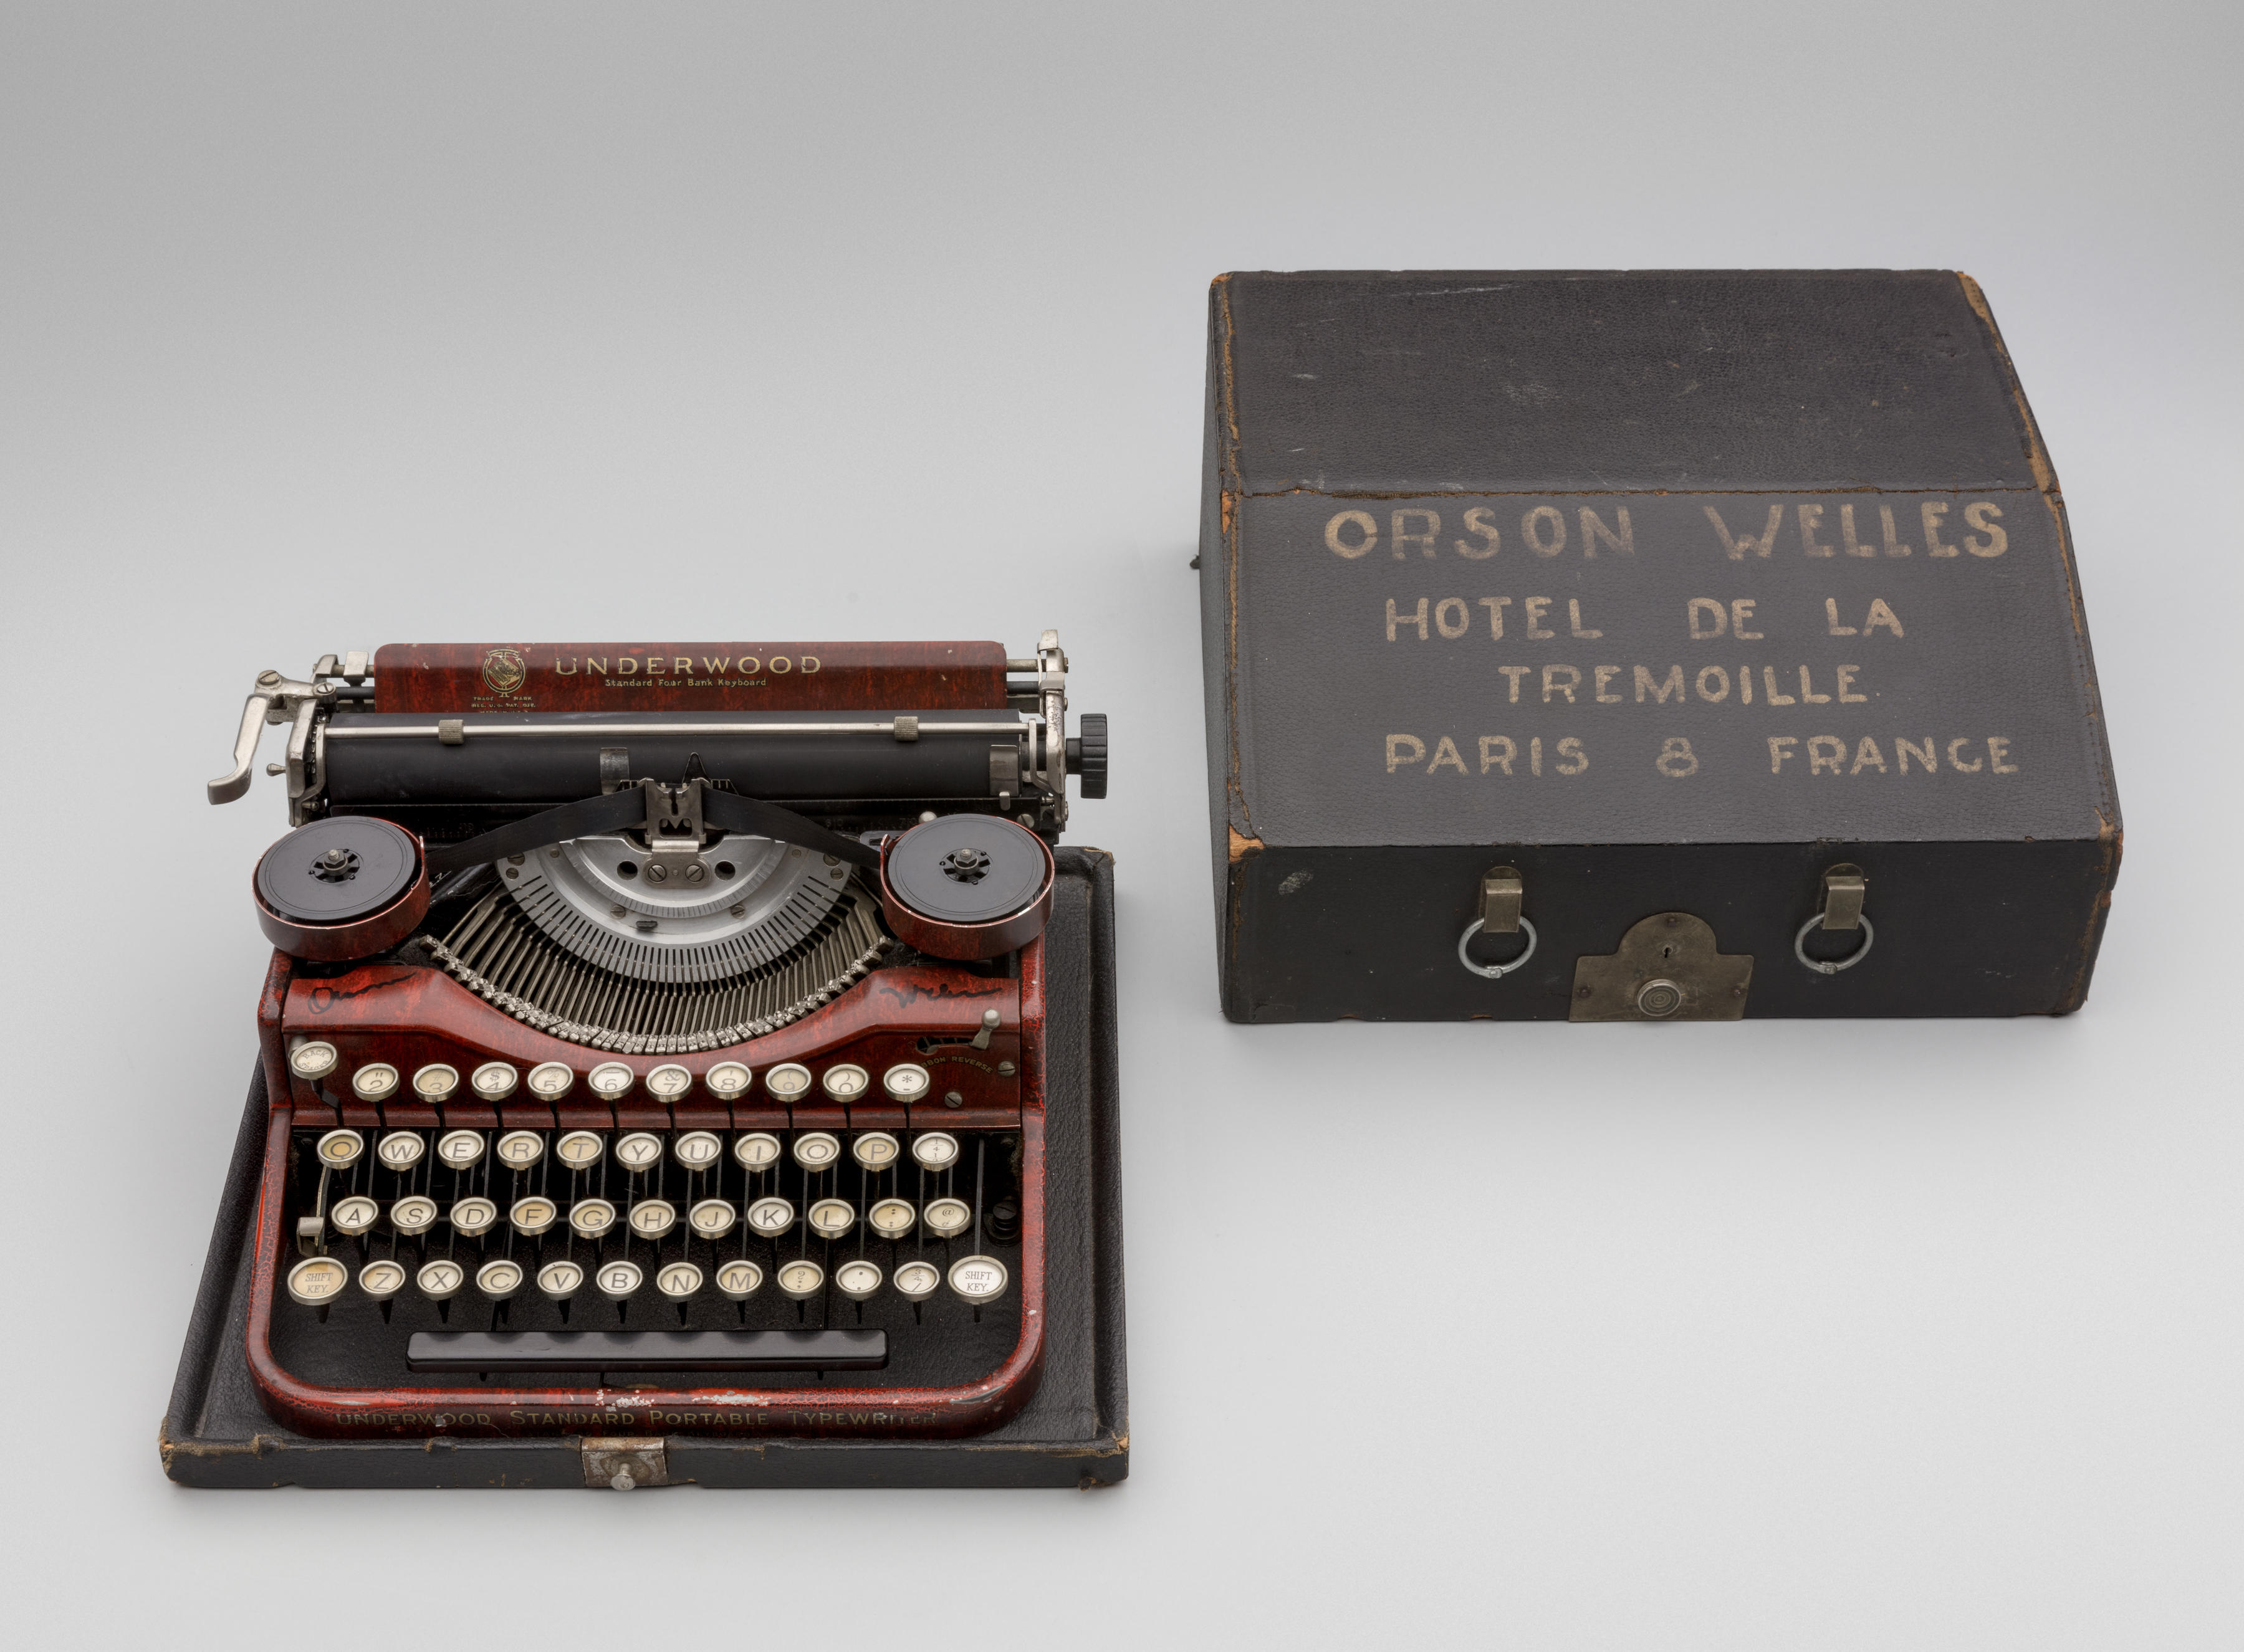 """A typewriter used by Orson Welles, from """"The Typewriter: An Innovation in Writing"""" at the SFO Museum in San Francisco."""